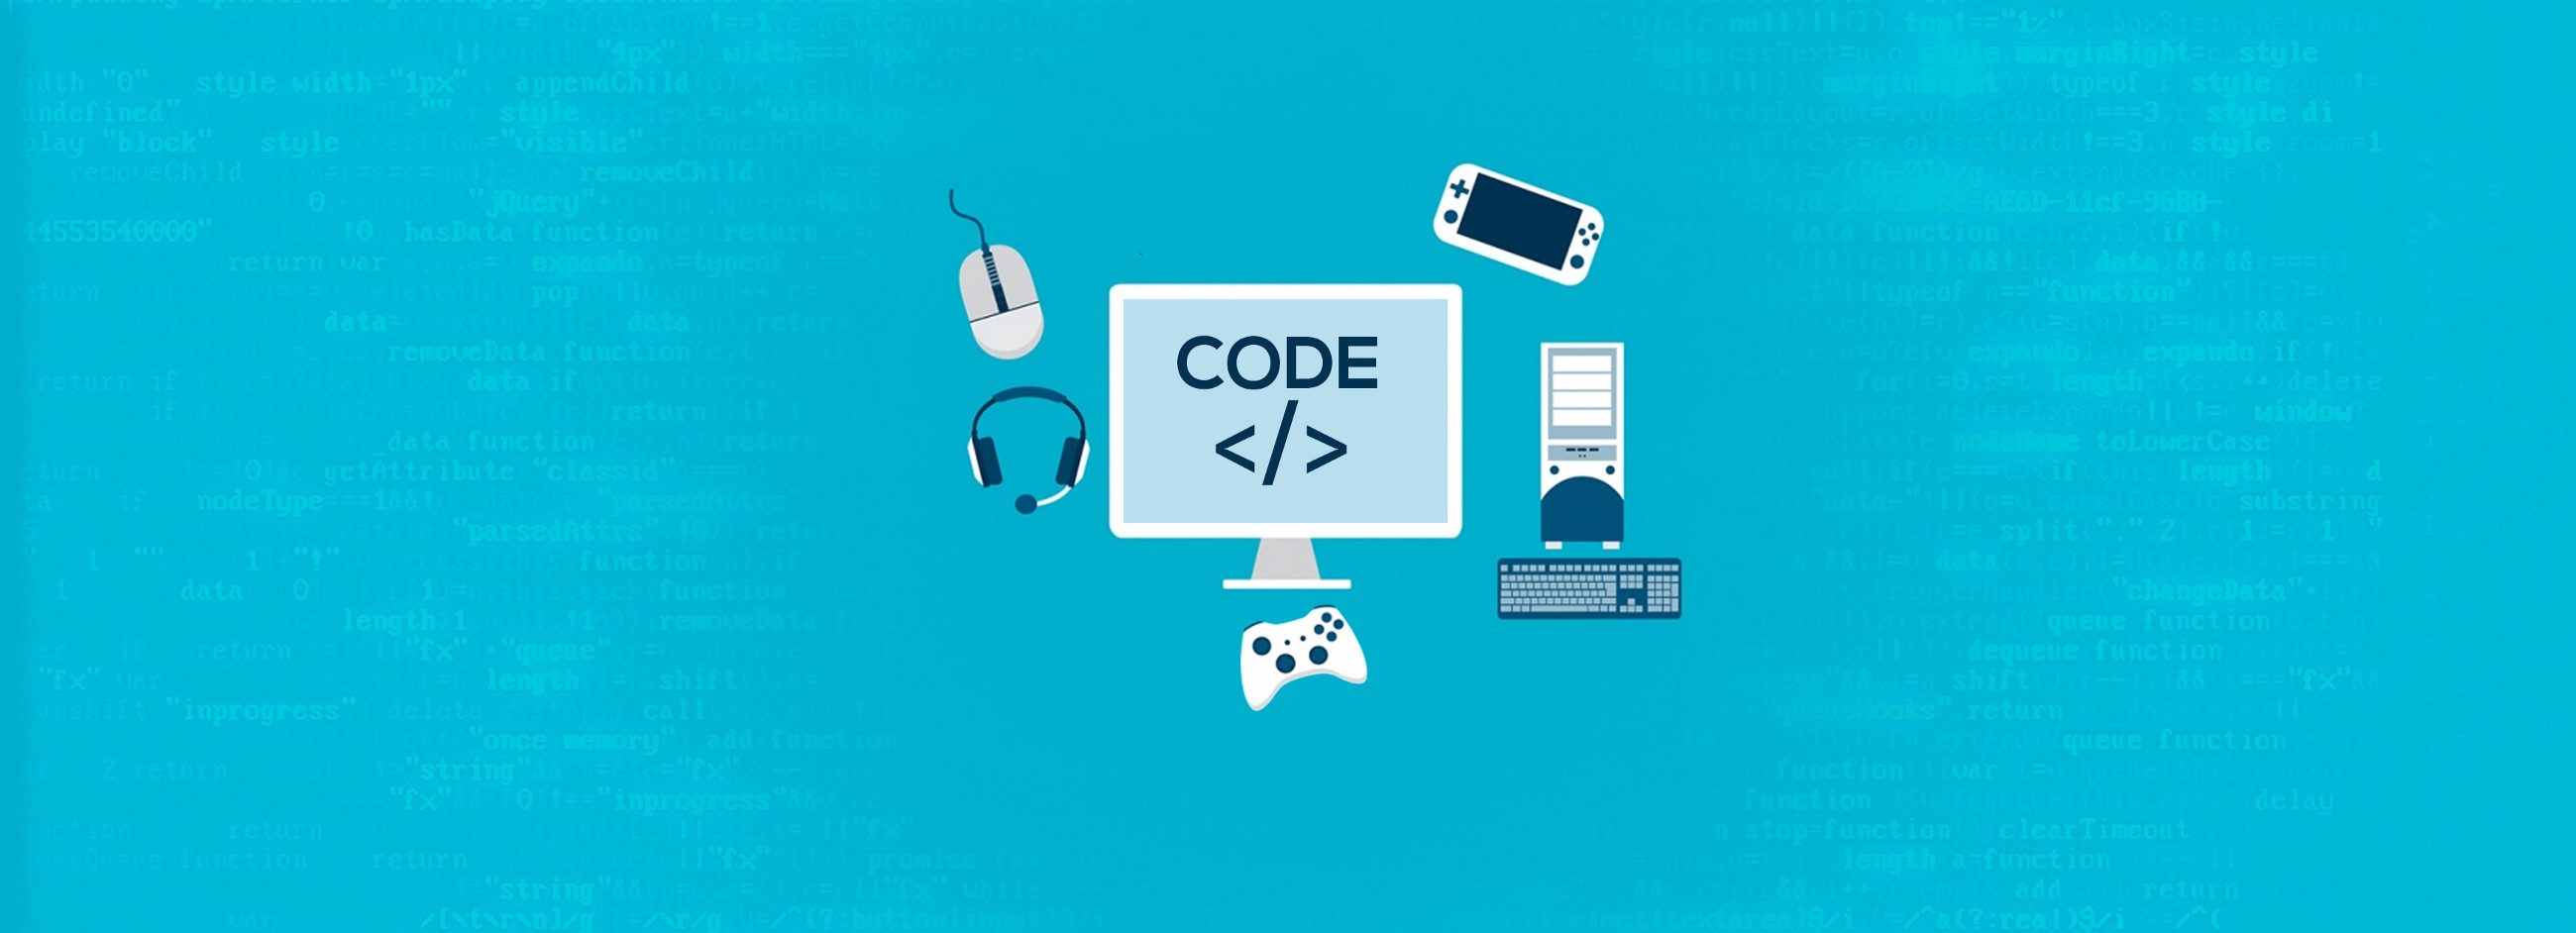 Master Coding while playing - By Jordan Fokoua